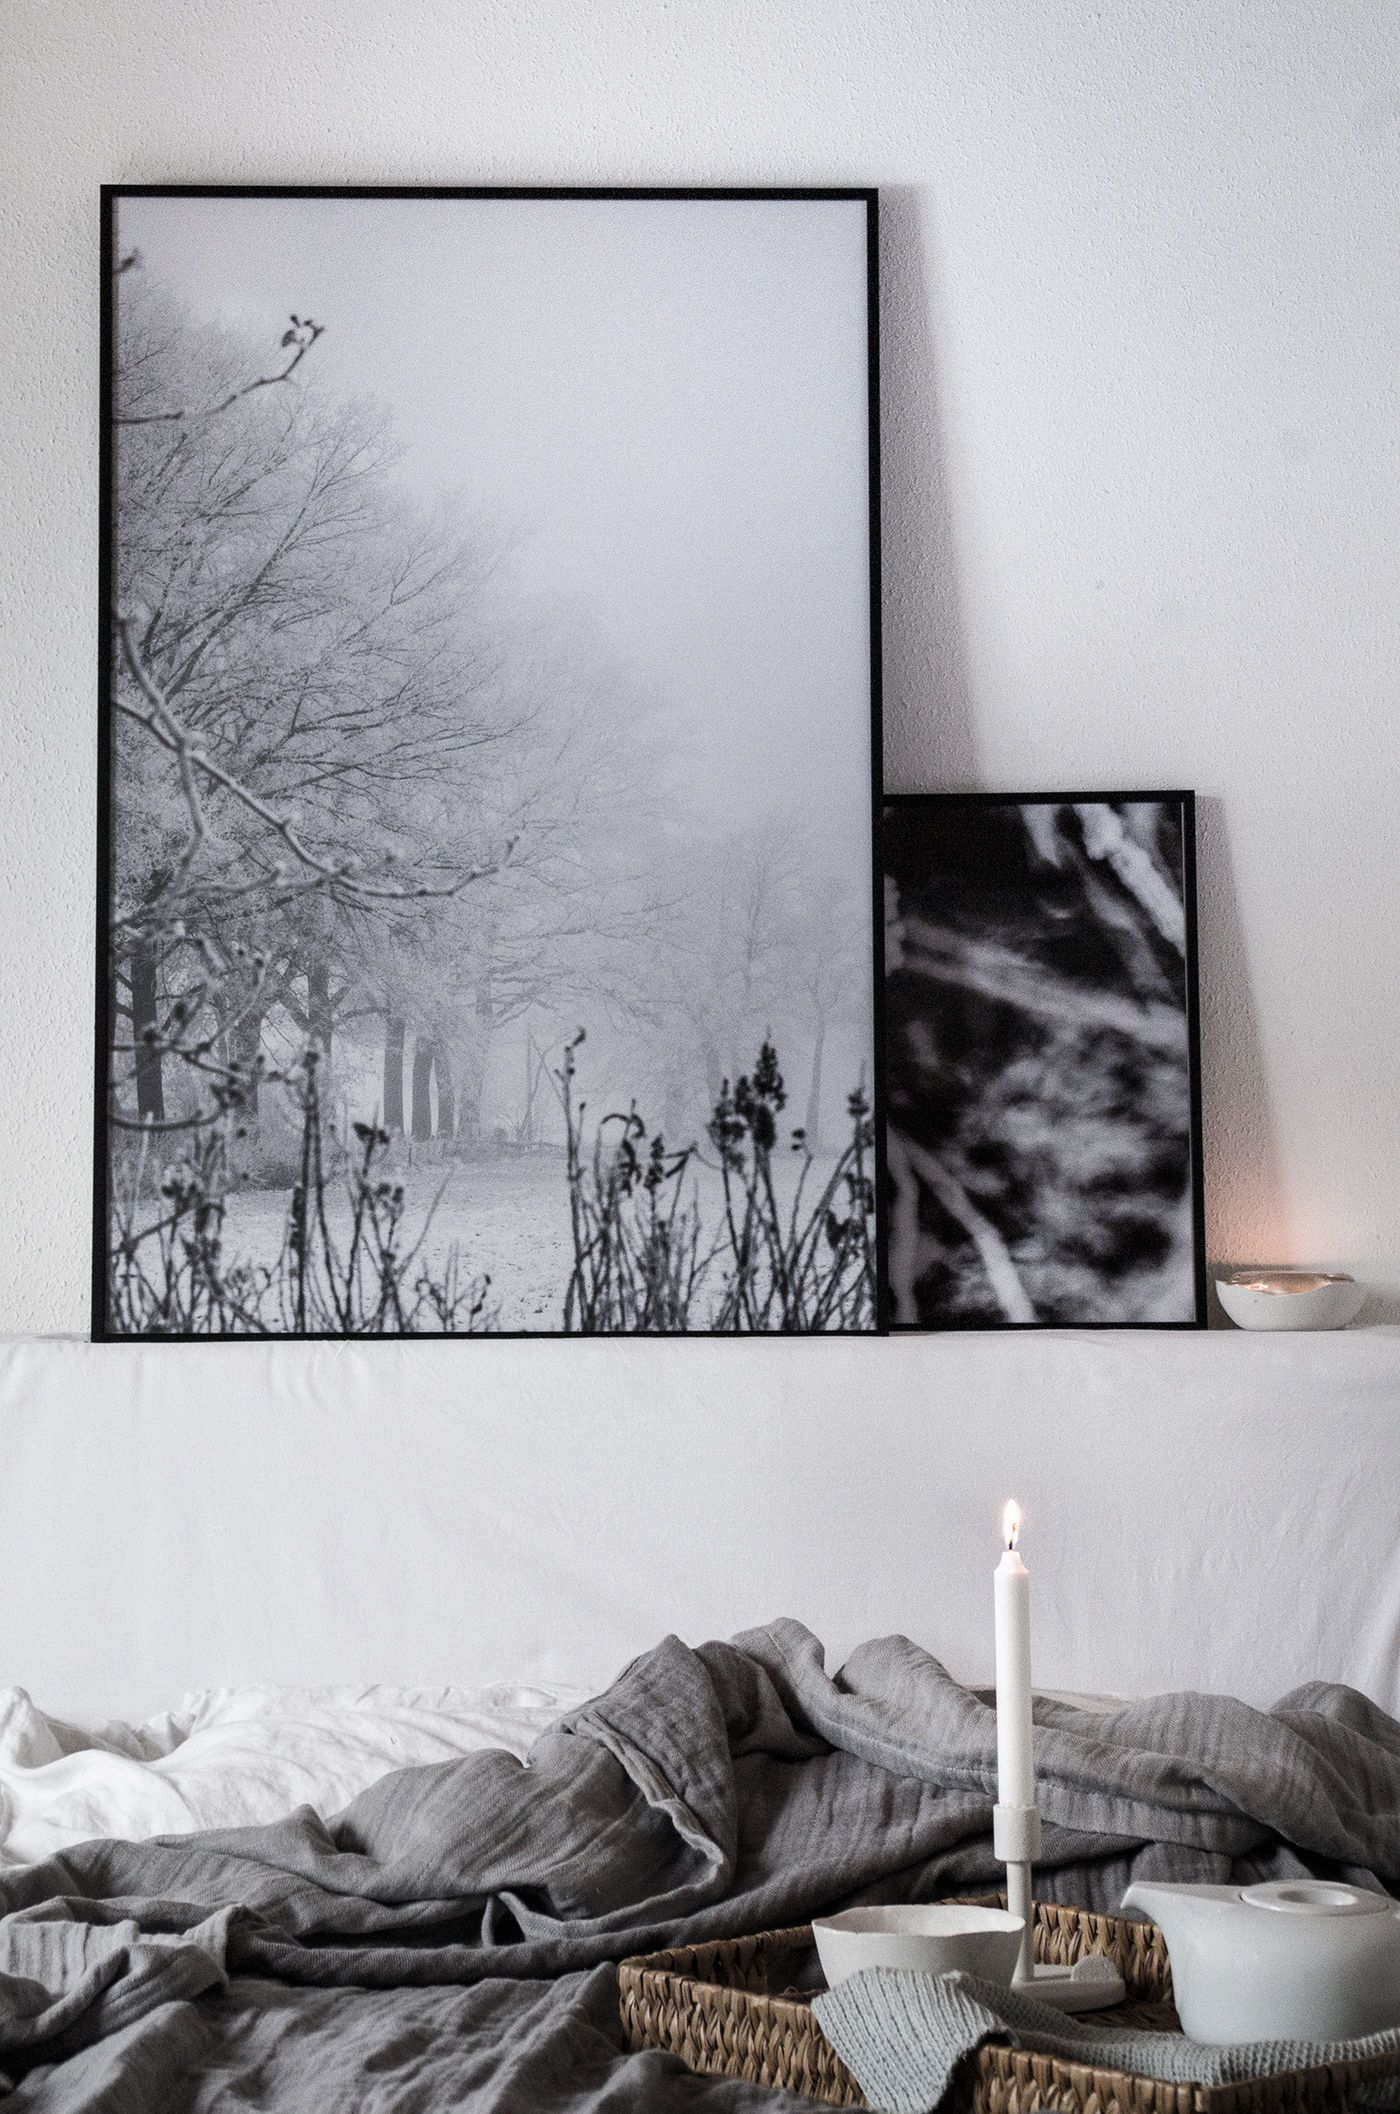 die besten ideen f r die wandgestaltung im schlafzimmer. Black Bedroom Furniture Sets. Home Design Ideas